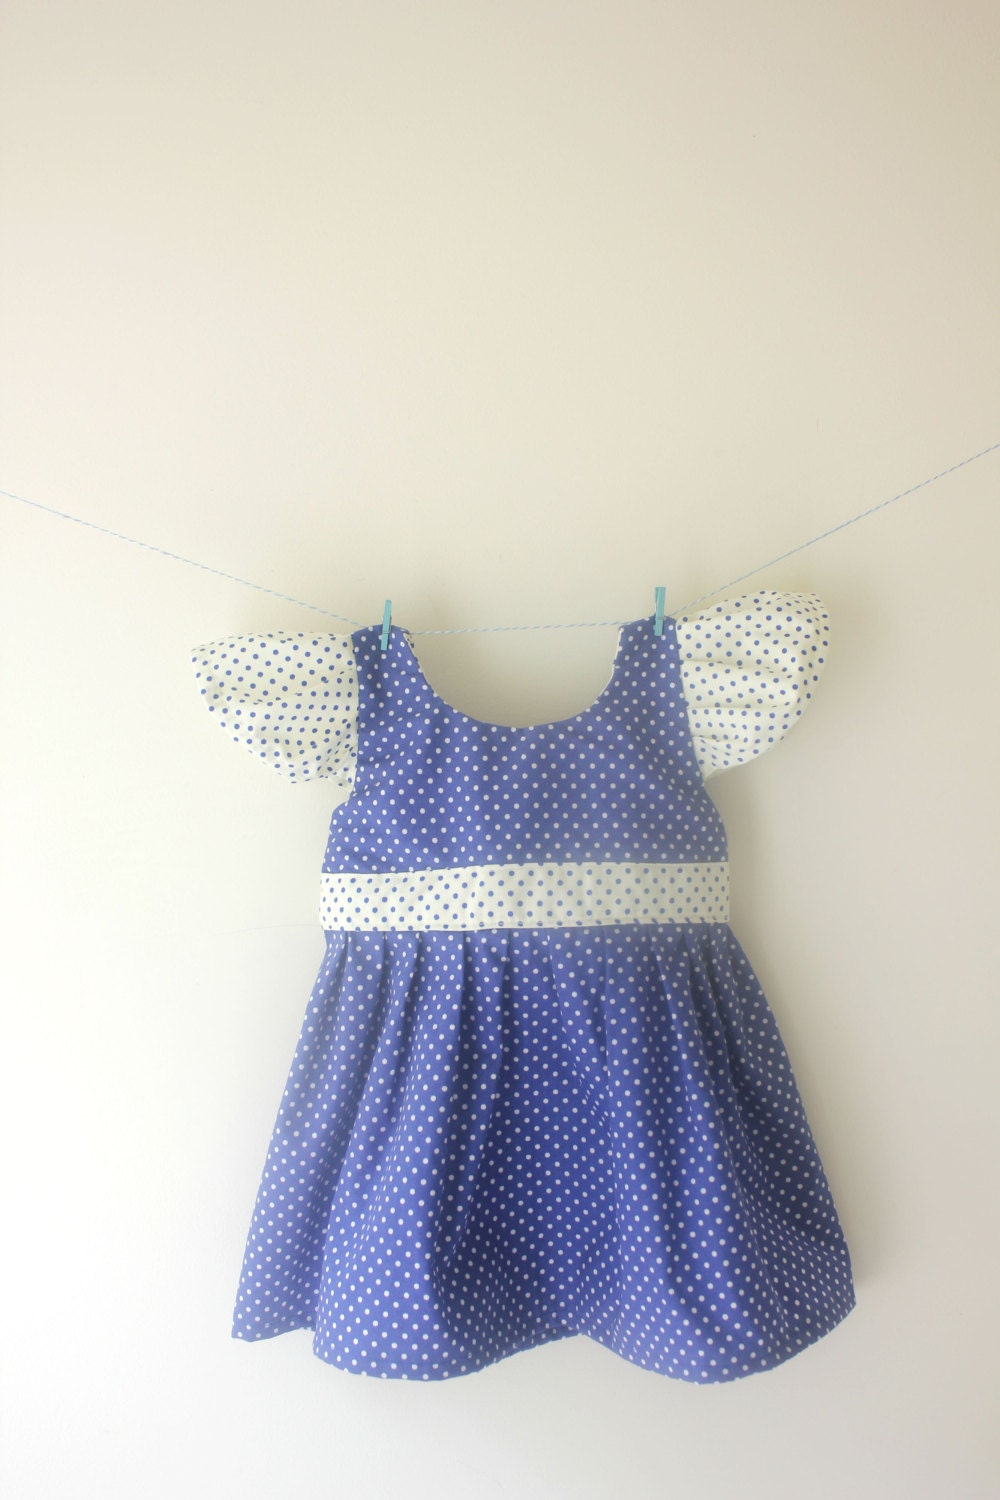 One of my two blue spotty dresses got damaged in Spring so (obviously) a replacement is needed. See more. Hucklebones London Blue Spotty Dress with Peter Pan Collar and Attached Petticoat Find this Pin and more on Spotty Dresses by Amy Nicholson.